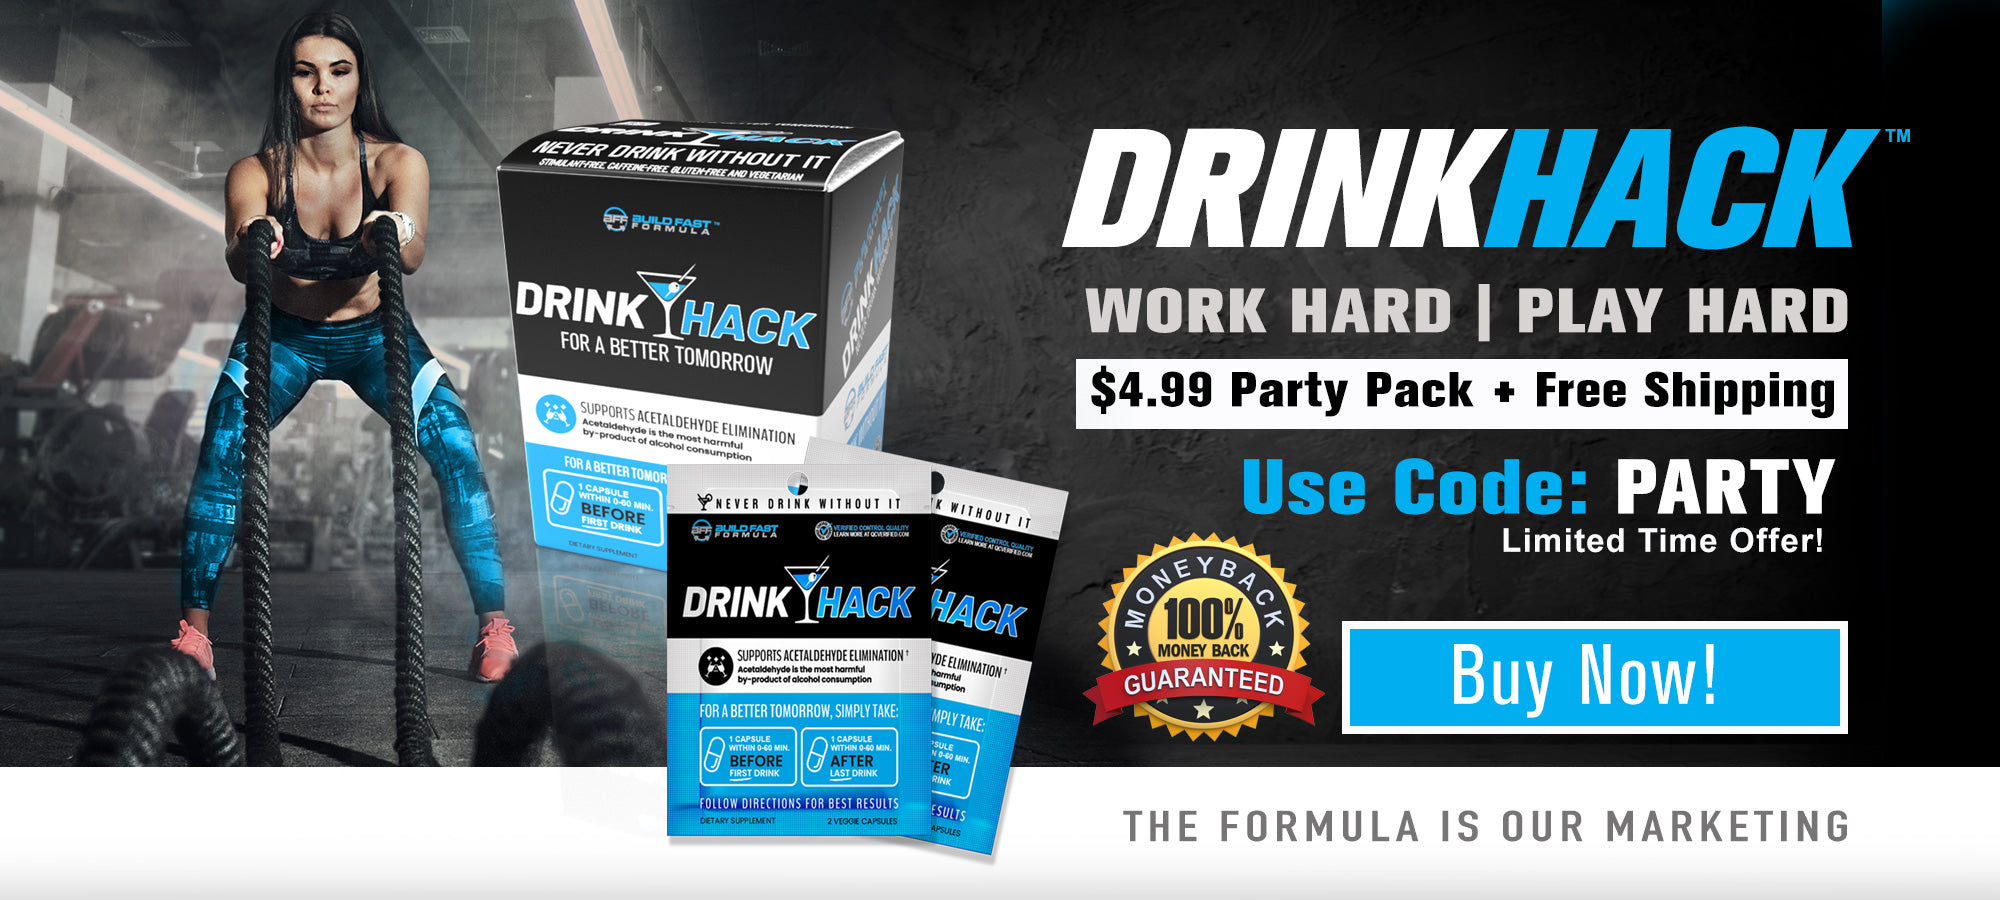 DRINKHACK HANGOVER PREVENTATIVE Build Fast Formula